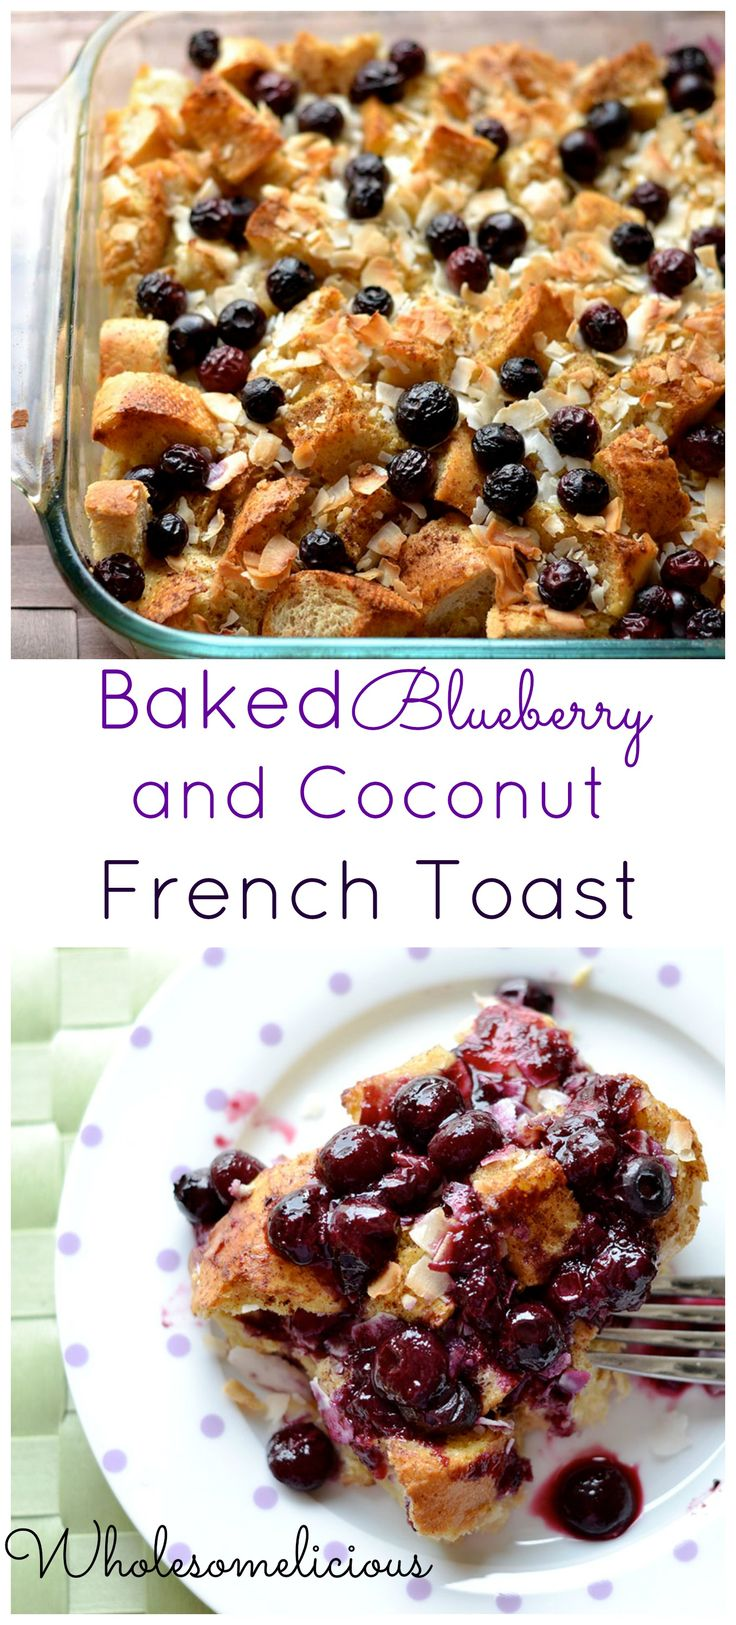 Baked Blueberry and Coconut French Toast with a simple blueberry sauce. Dairy-Free, and no added sugar: only natural sweeteners!